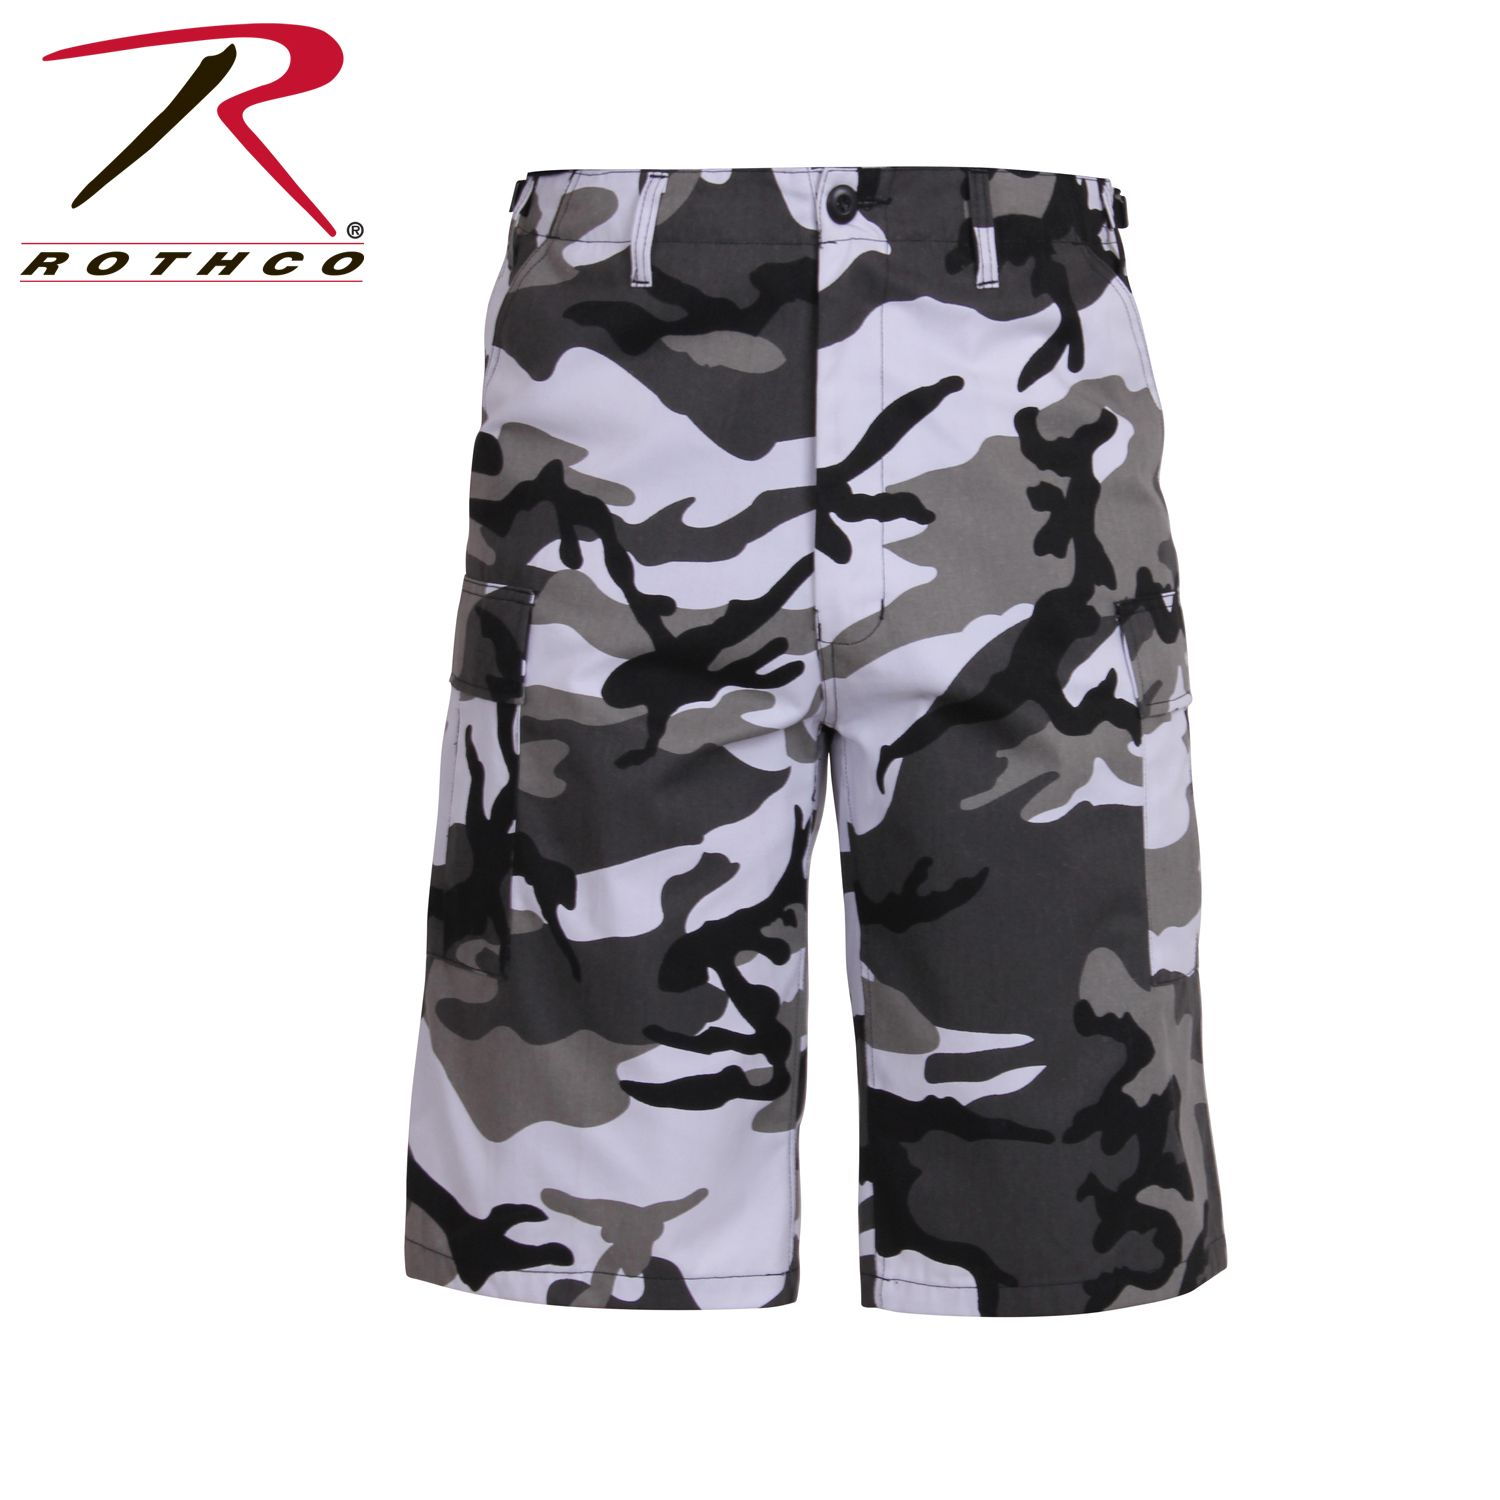 857071170a795 Buy Rothco Long Length Camo BDU Short - Rothco Online at Best price - WA